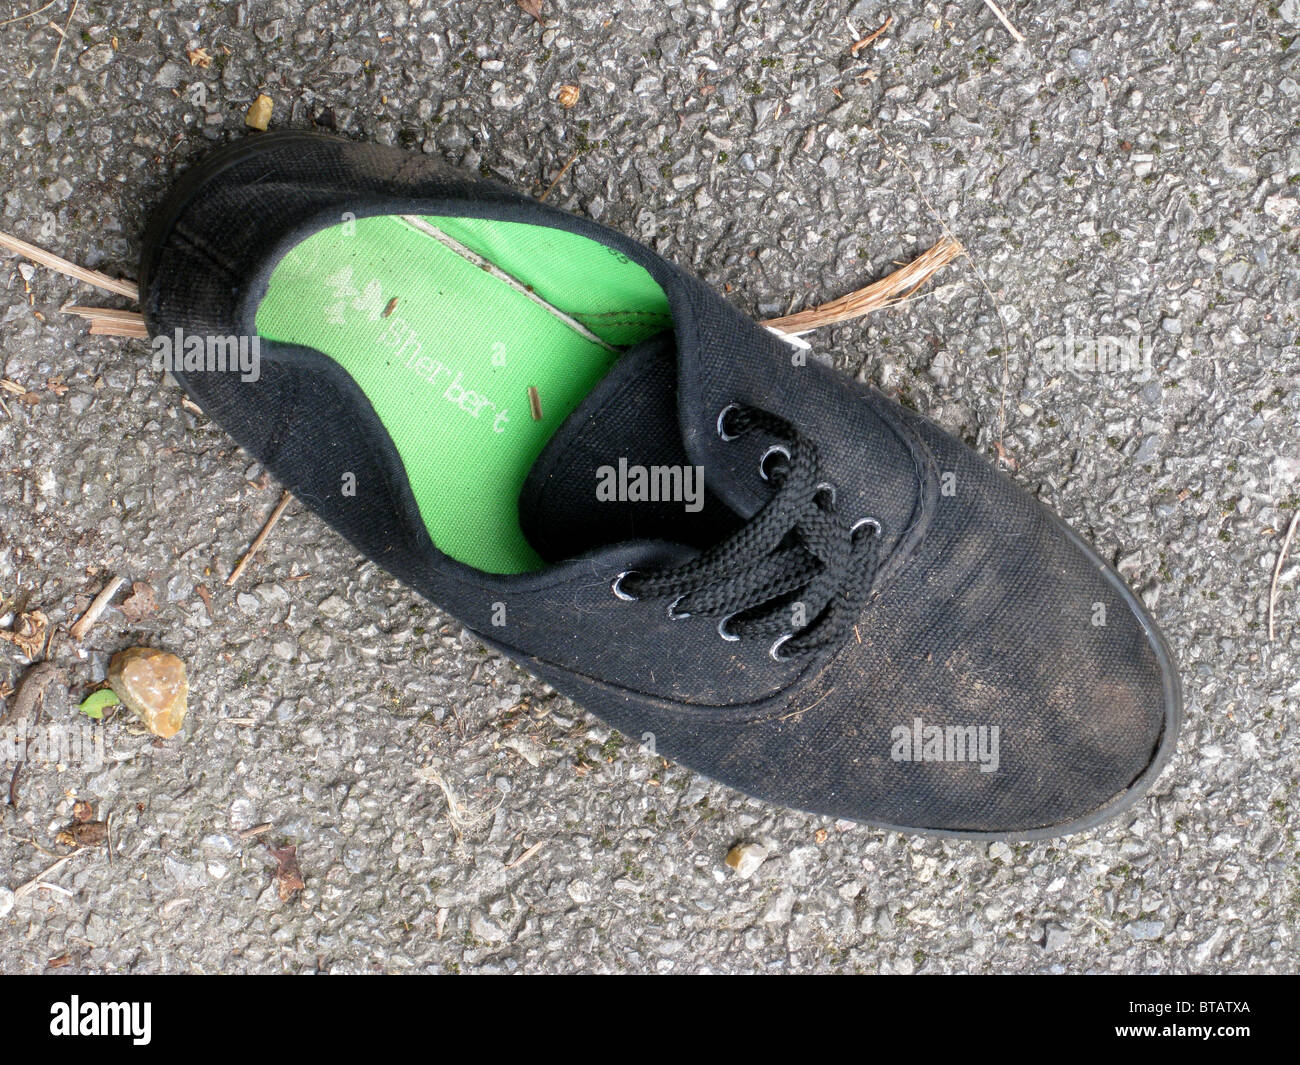 Discarded Black Plimsoll on Pavement - Stock Image